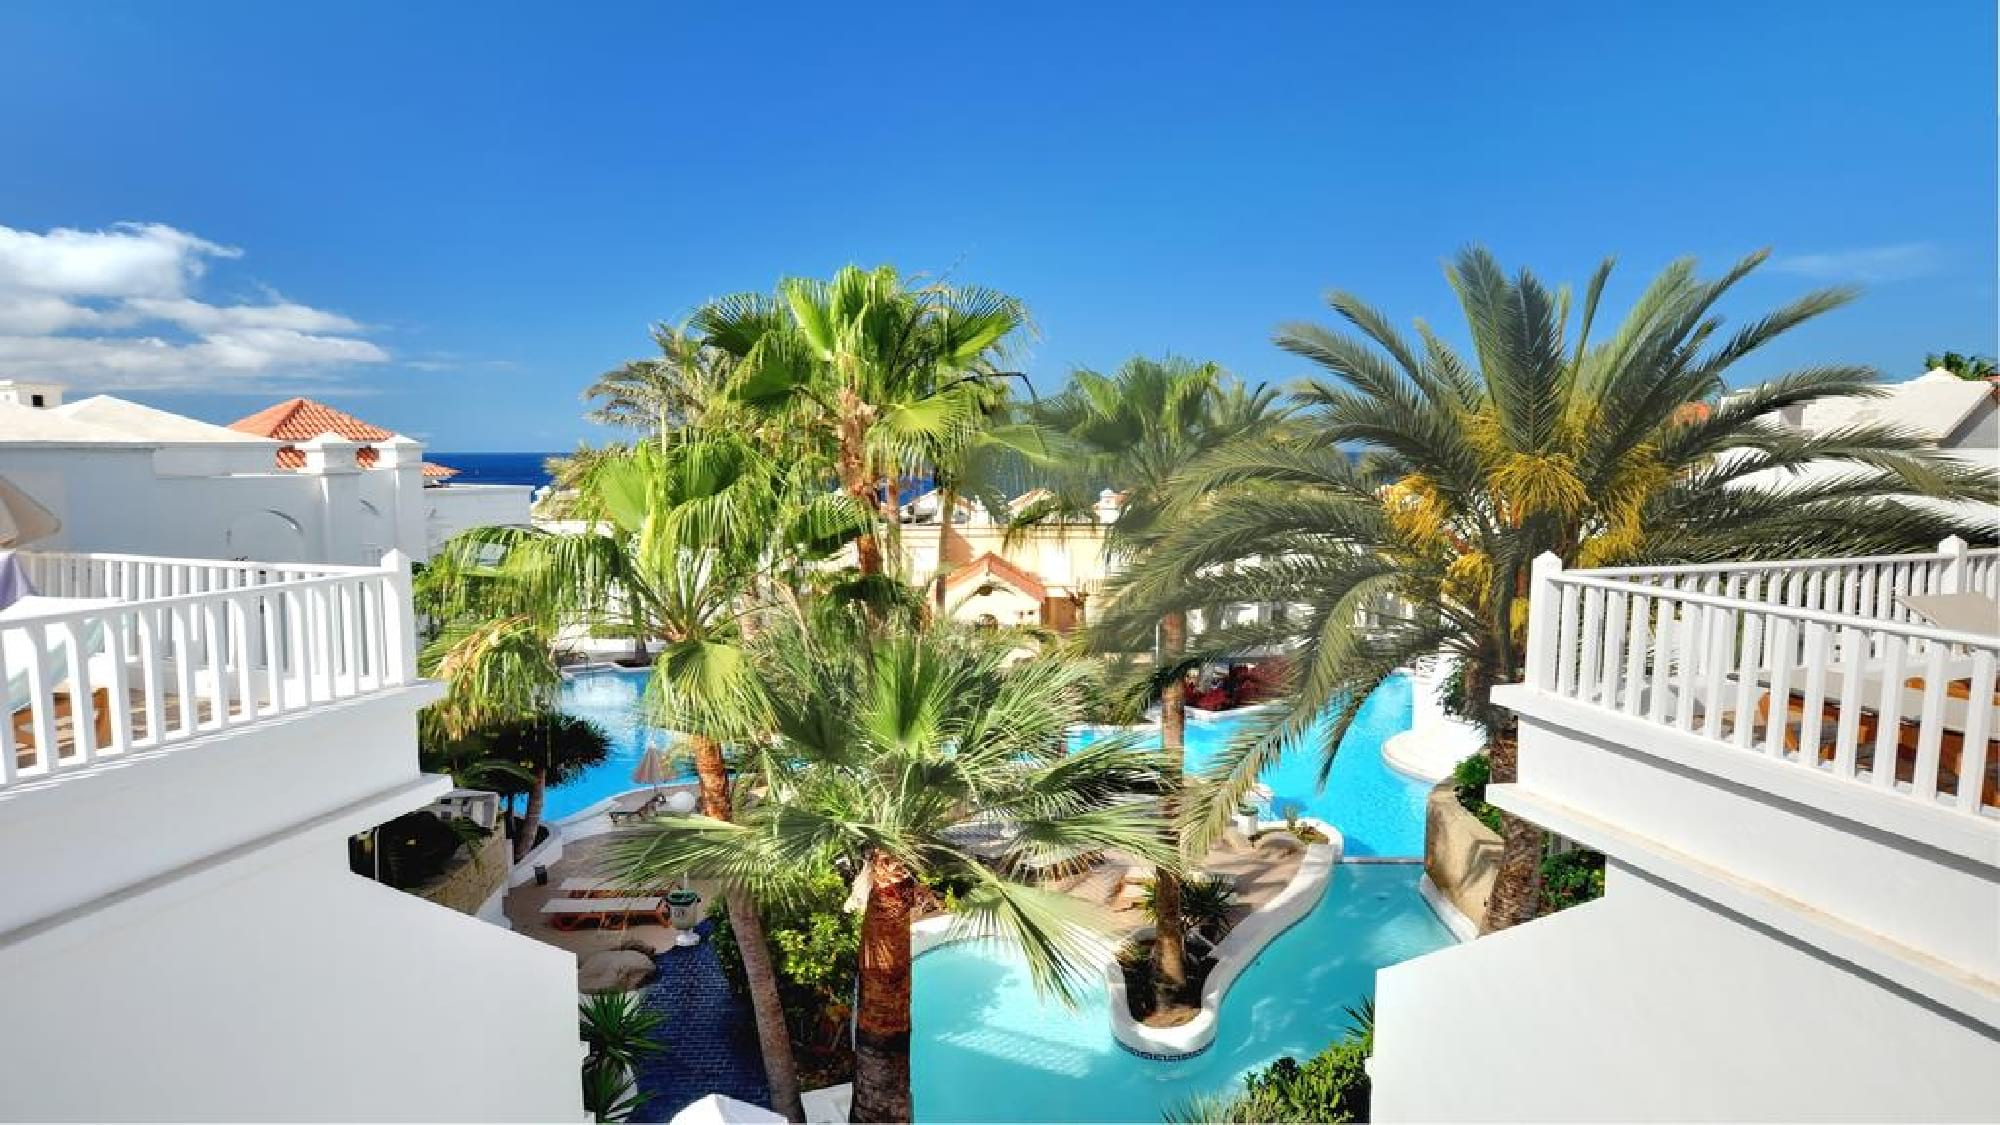 1 Bedroom Apartment in Tenerife for rent | Costa Adeje | Lagos Fanabe